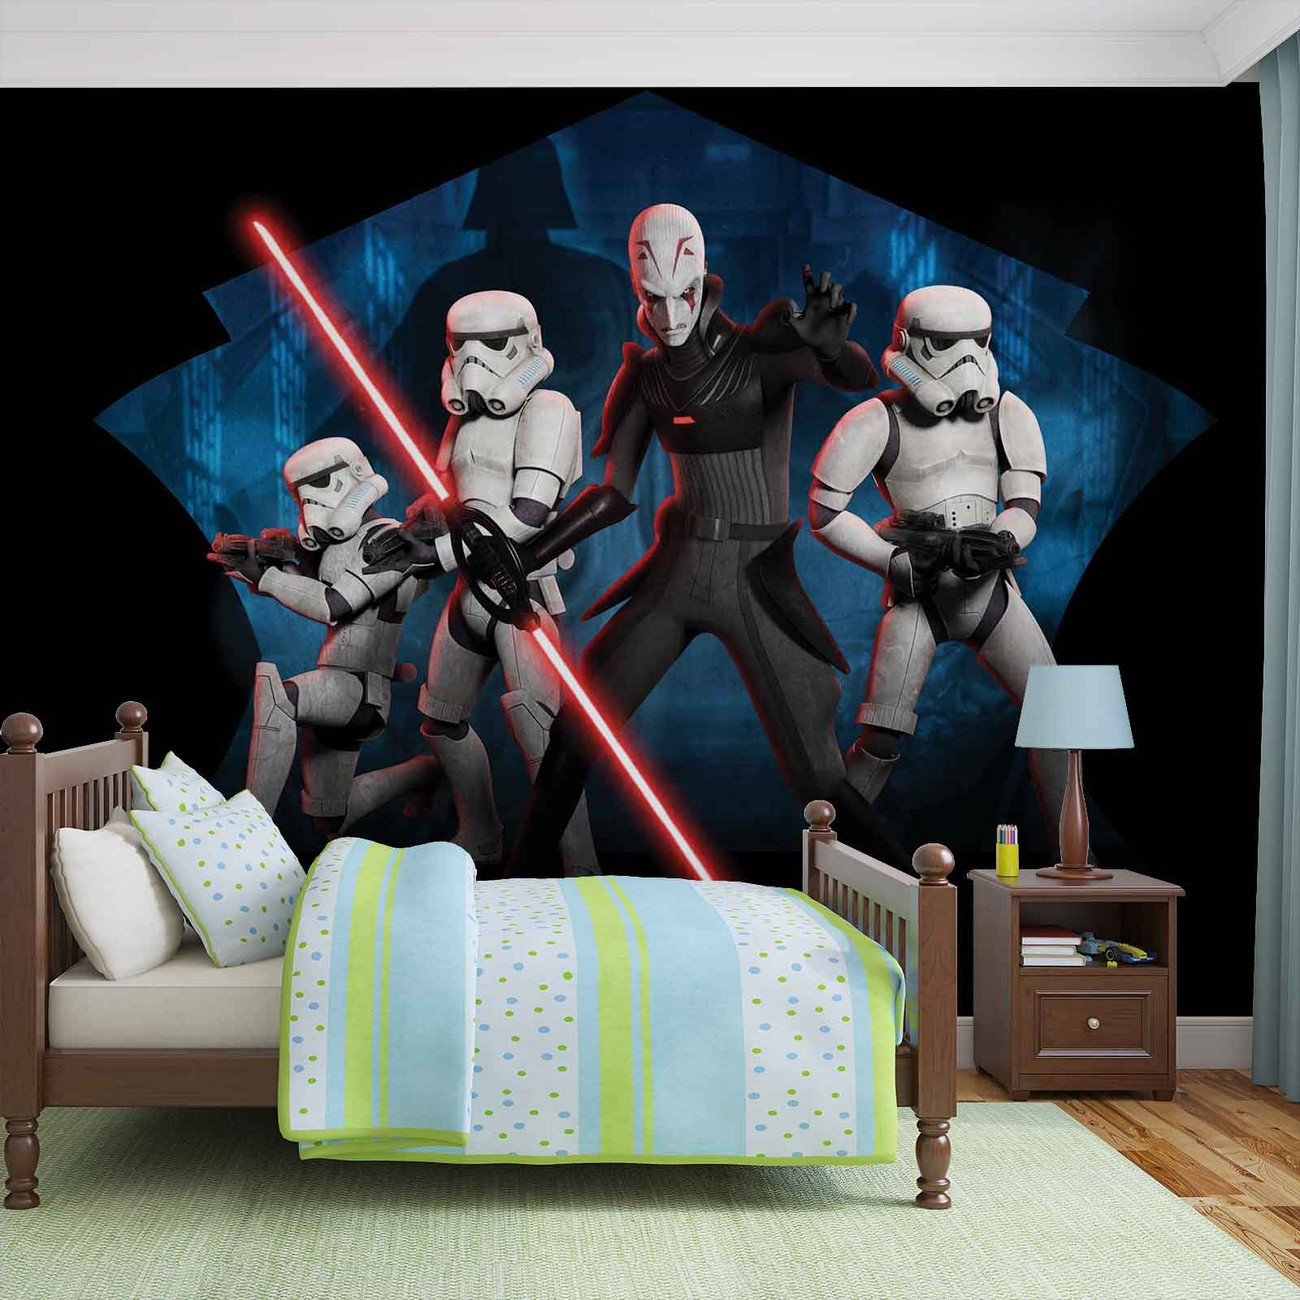 star wars rebels inquisitor sith wall paper mural buy at europosters. Black Bedroom Furniture Sets. Home Design Ideas